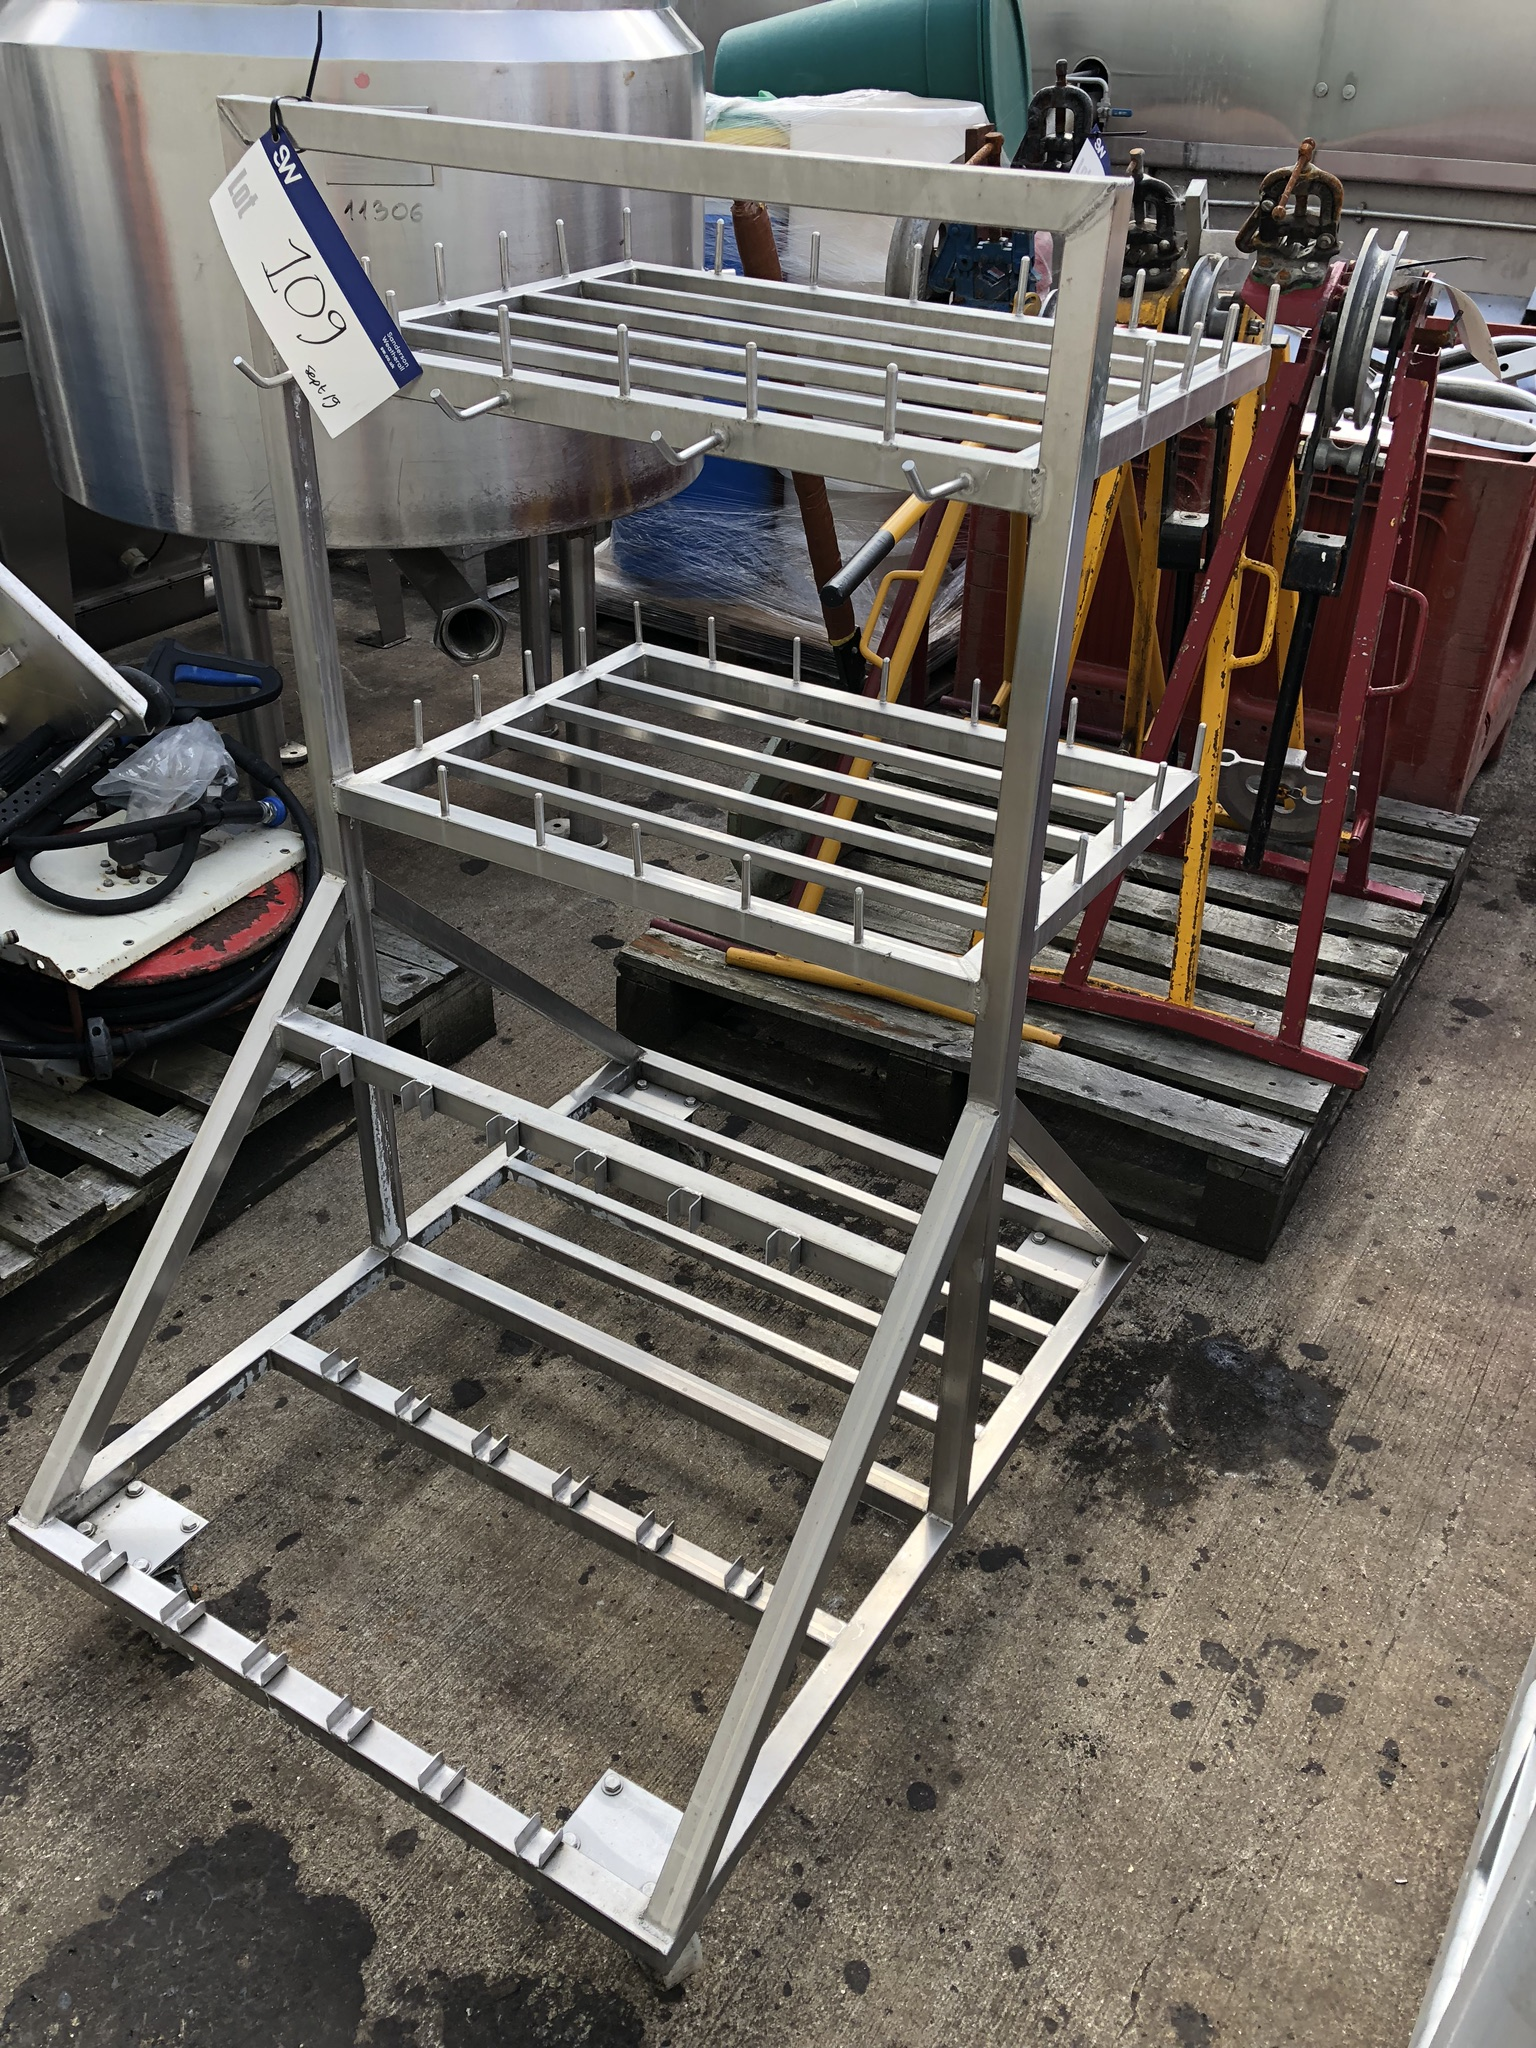 Lotto 109 - Stainless Steel Mobile Stand, approx. 1m x 0.8m x 1.3m high, lift out charge - £10